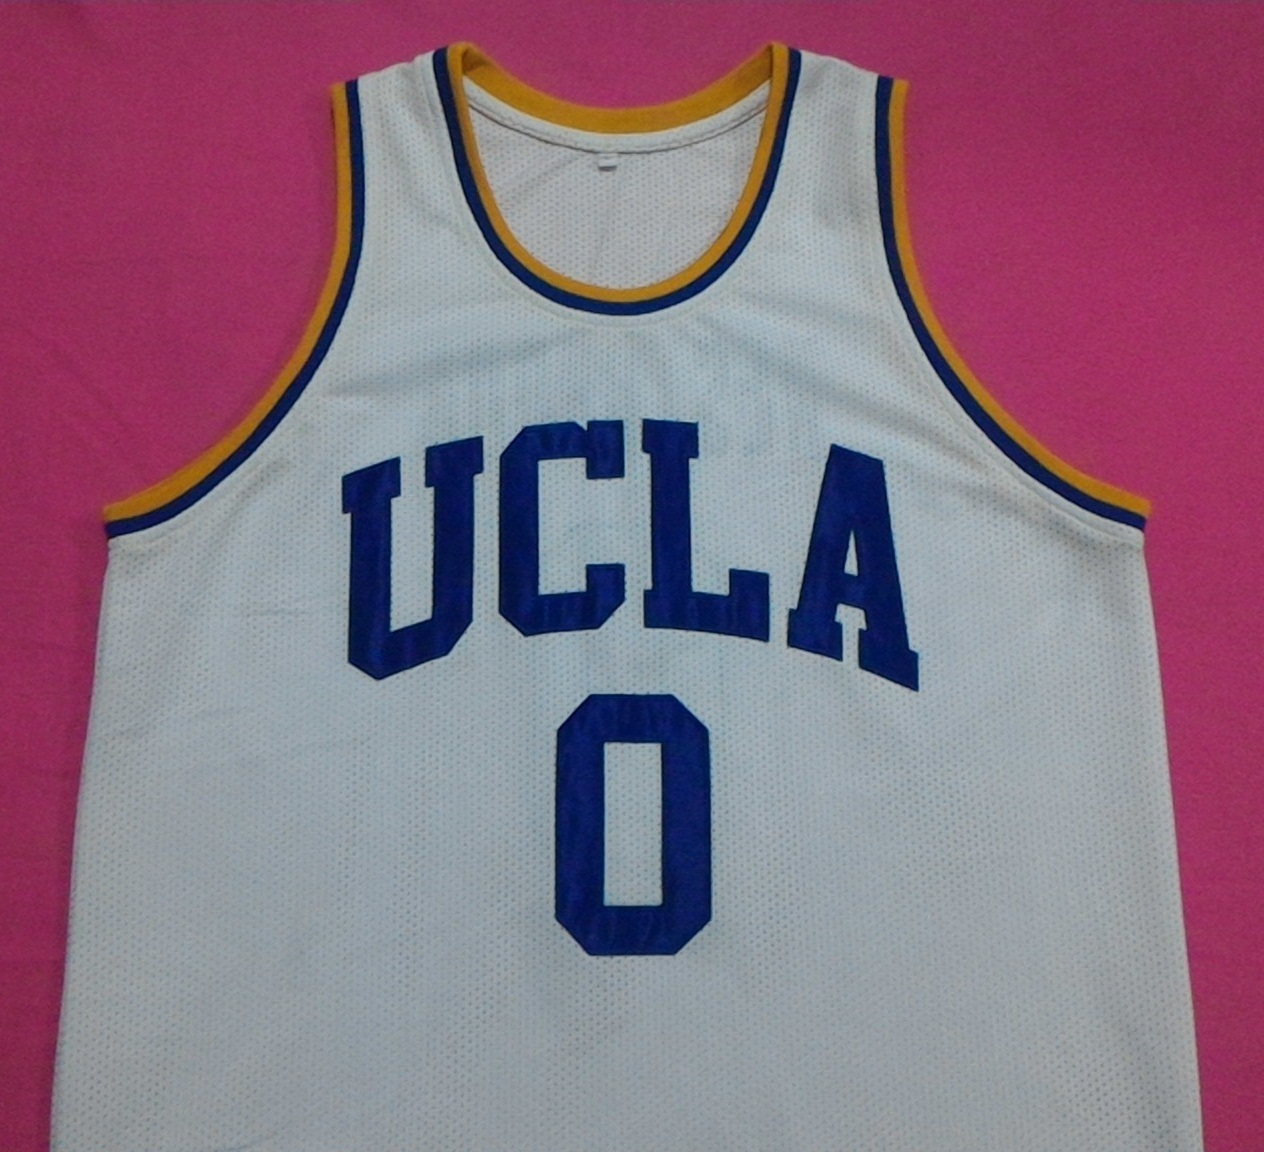 b84c292db P 20160425 183417. P 20160425 183417. Previous. RUSSELL WESTBROOK UCLA  Bruins White College Basketball Jersey Any ...